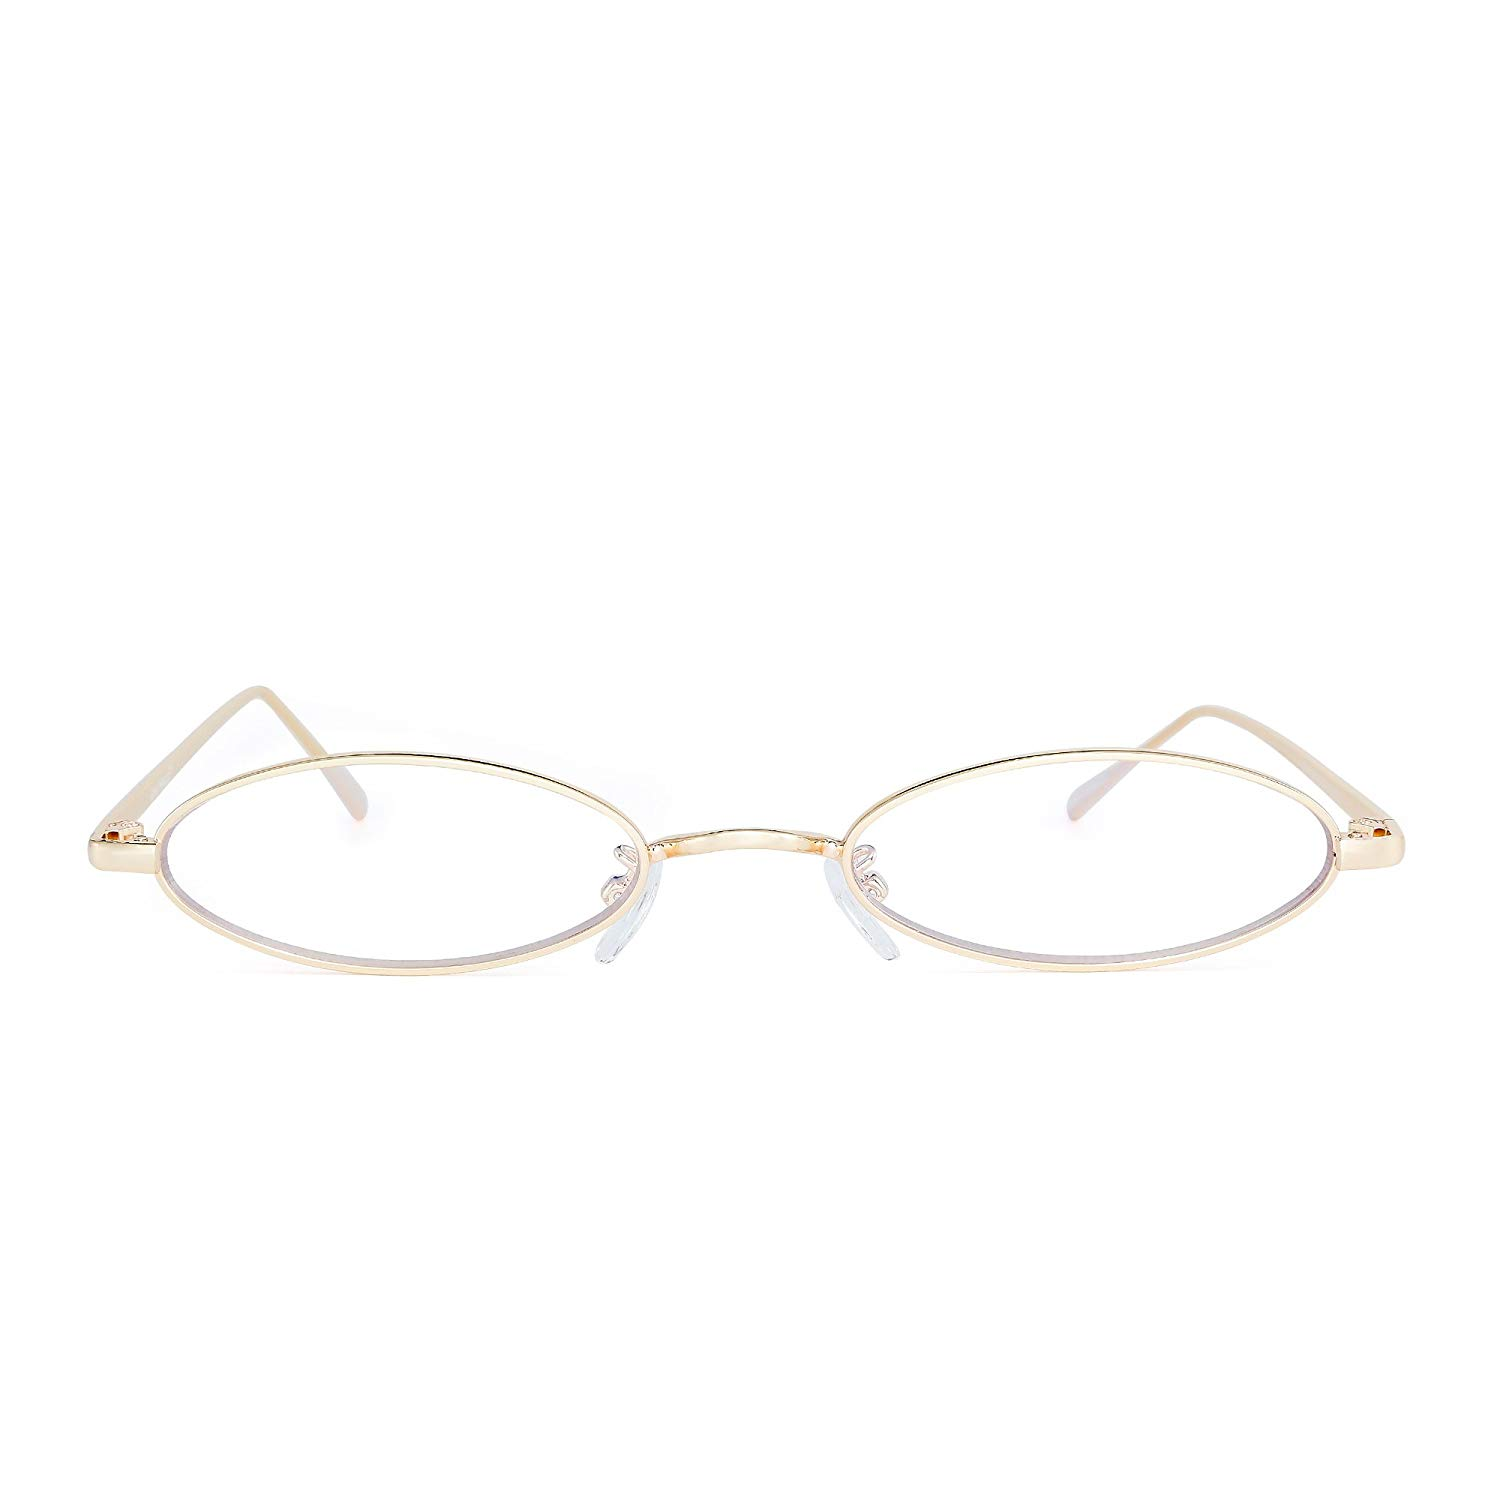 f90b70a138 Get Quotations · Small Oval Metal Sunglasses Retro Slender Clear Lens  Tinted Glasses Women Men